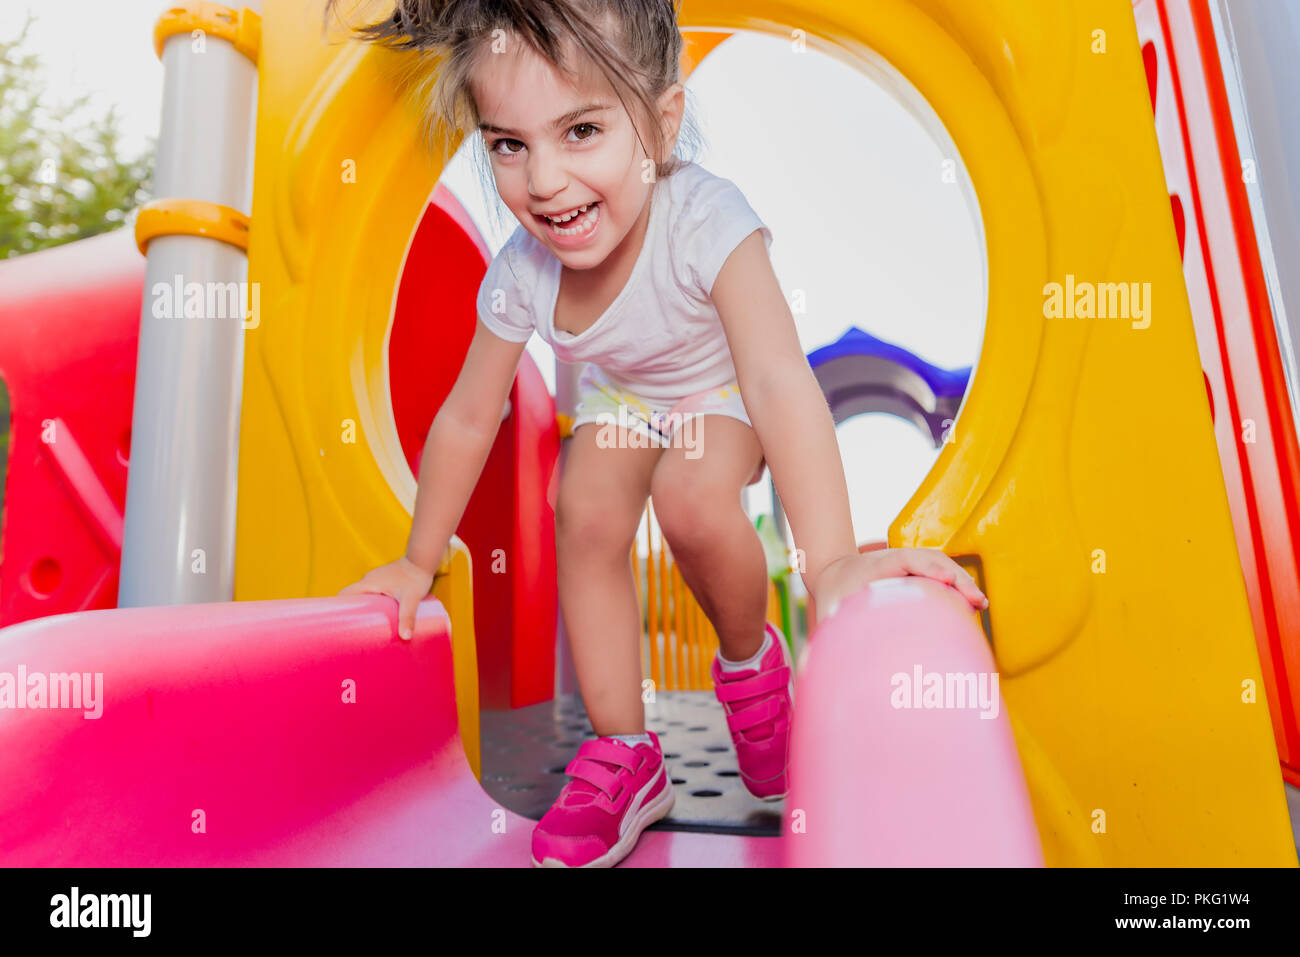 Portrait of cute little girl holding  and sliding on sliders on playground - Stock Image